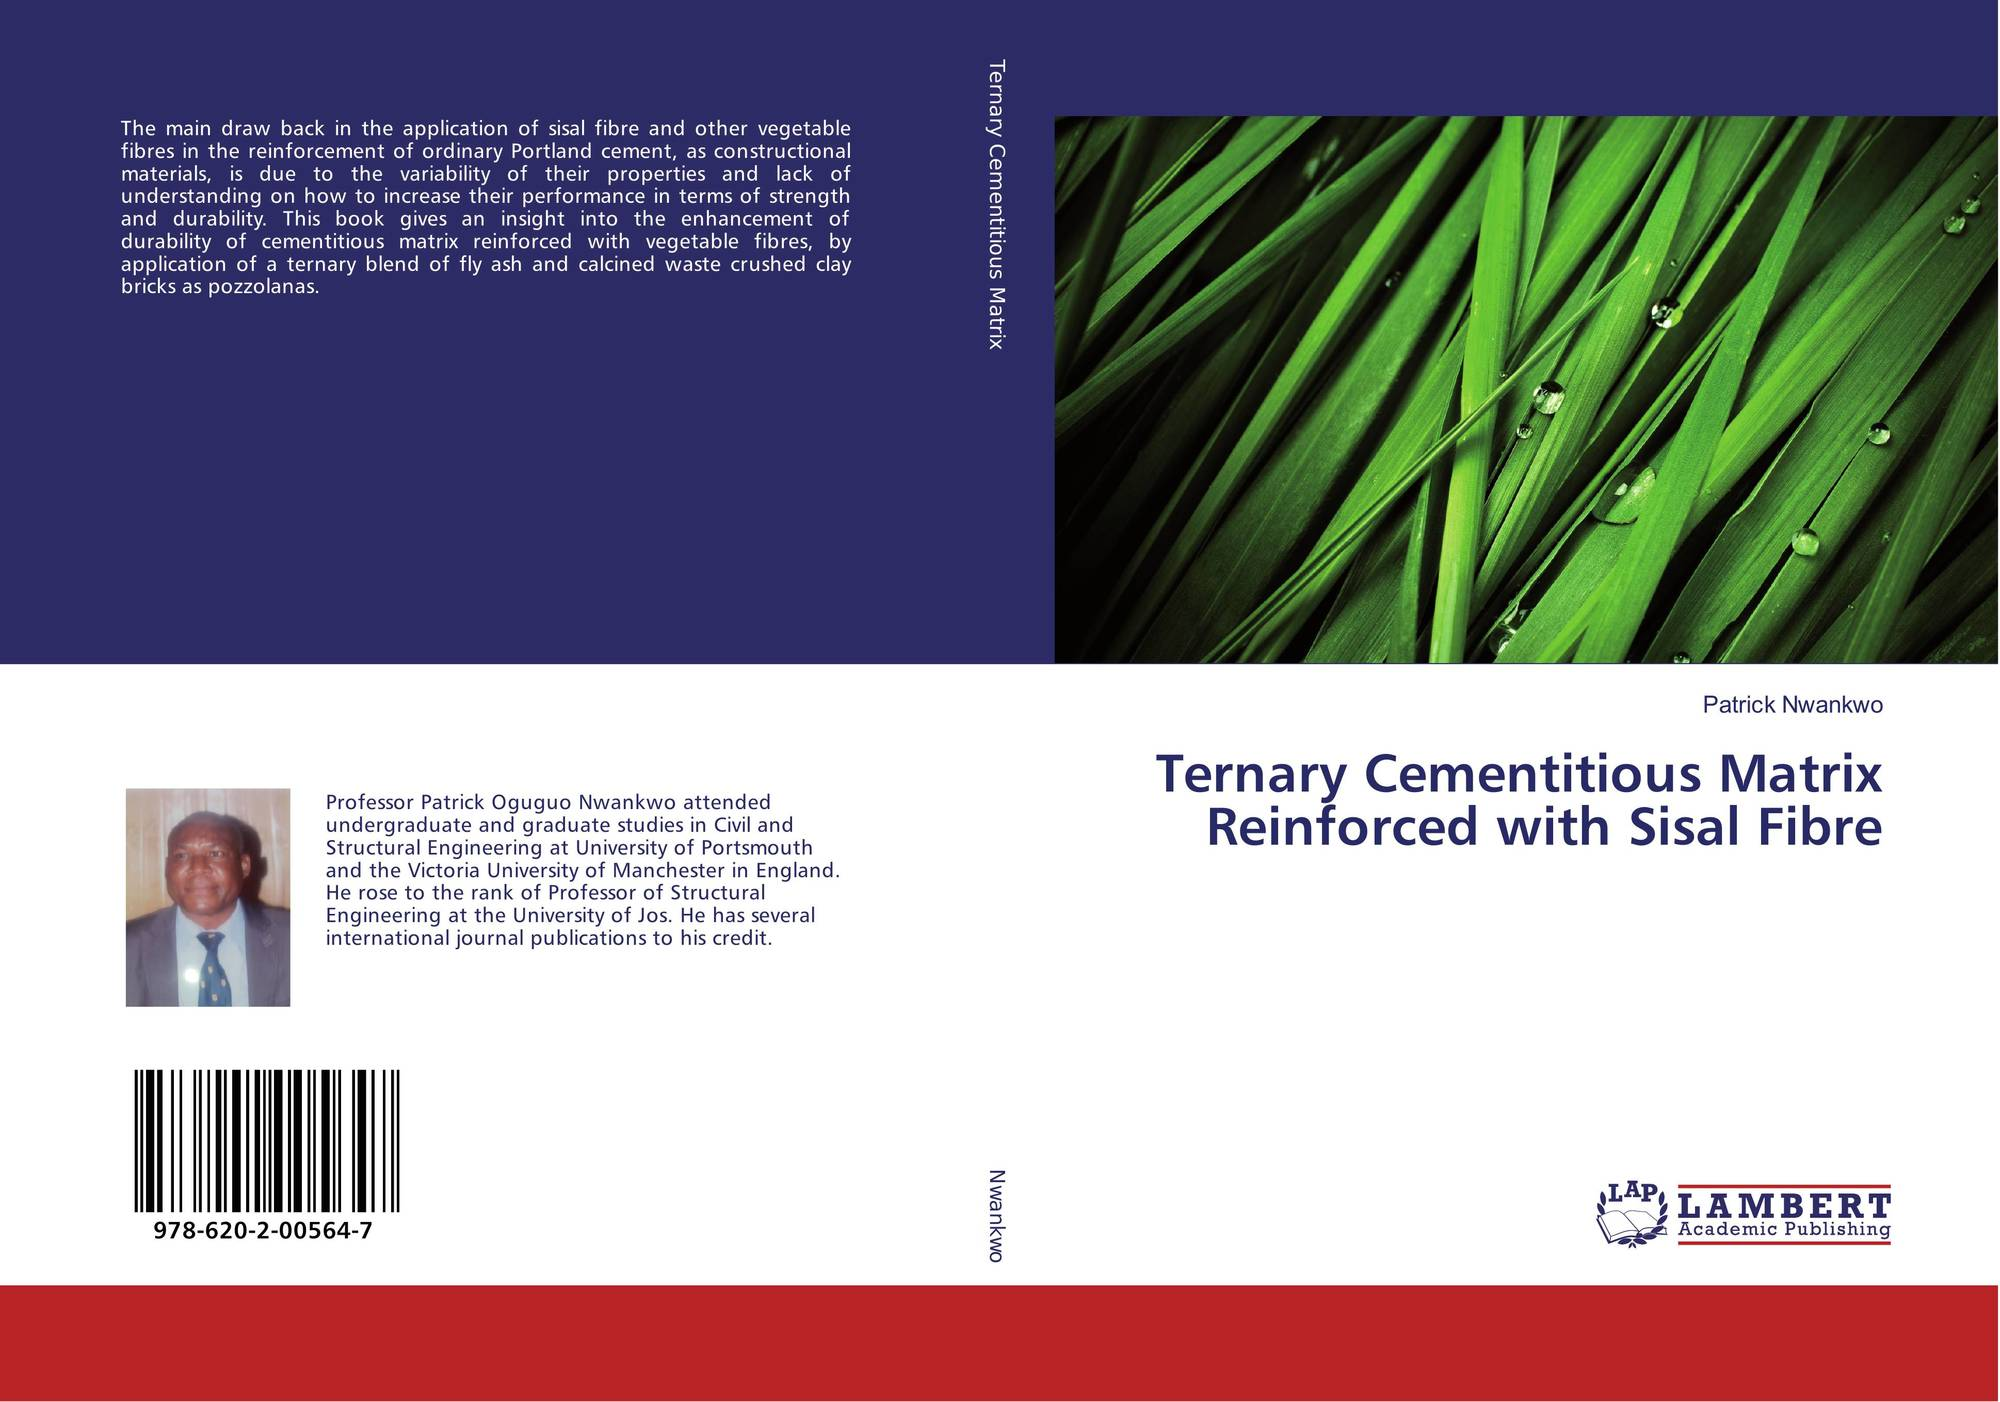 Ternary Cementitious Matrix Reinforced with Sisal Fibre, 978-620-2